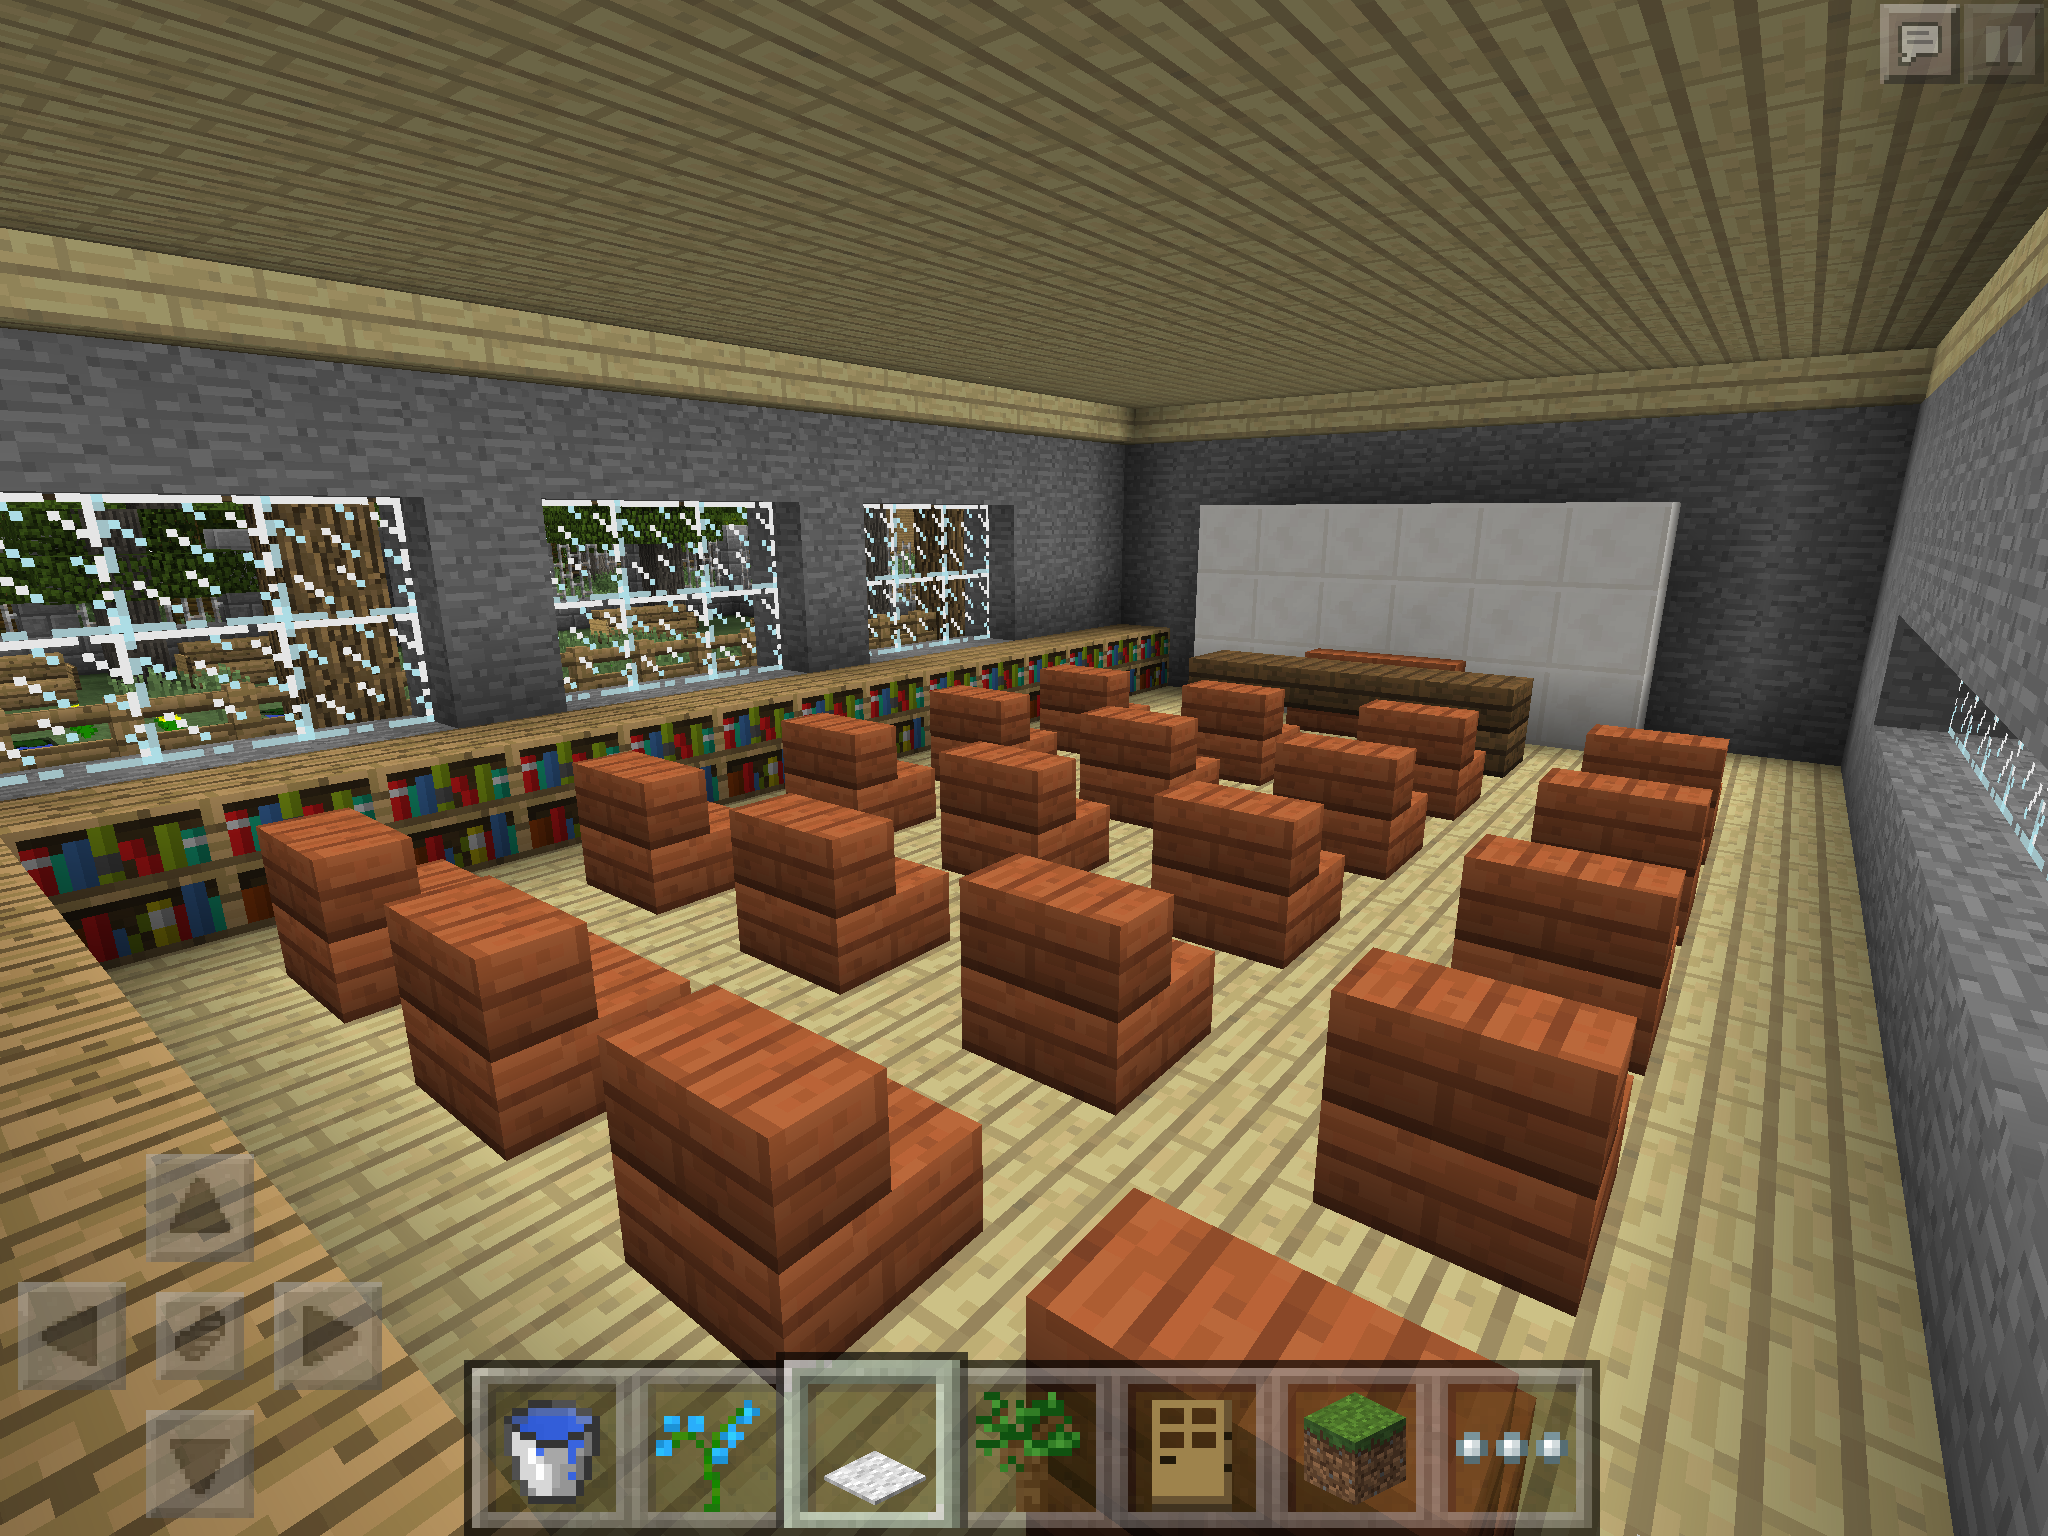 Making Sense Of Minecraft For Learning By Jeremy Riel Medium